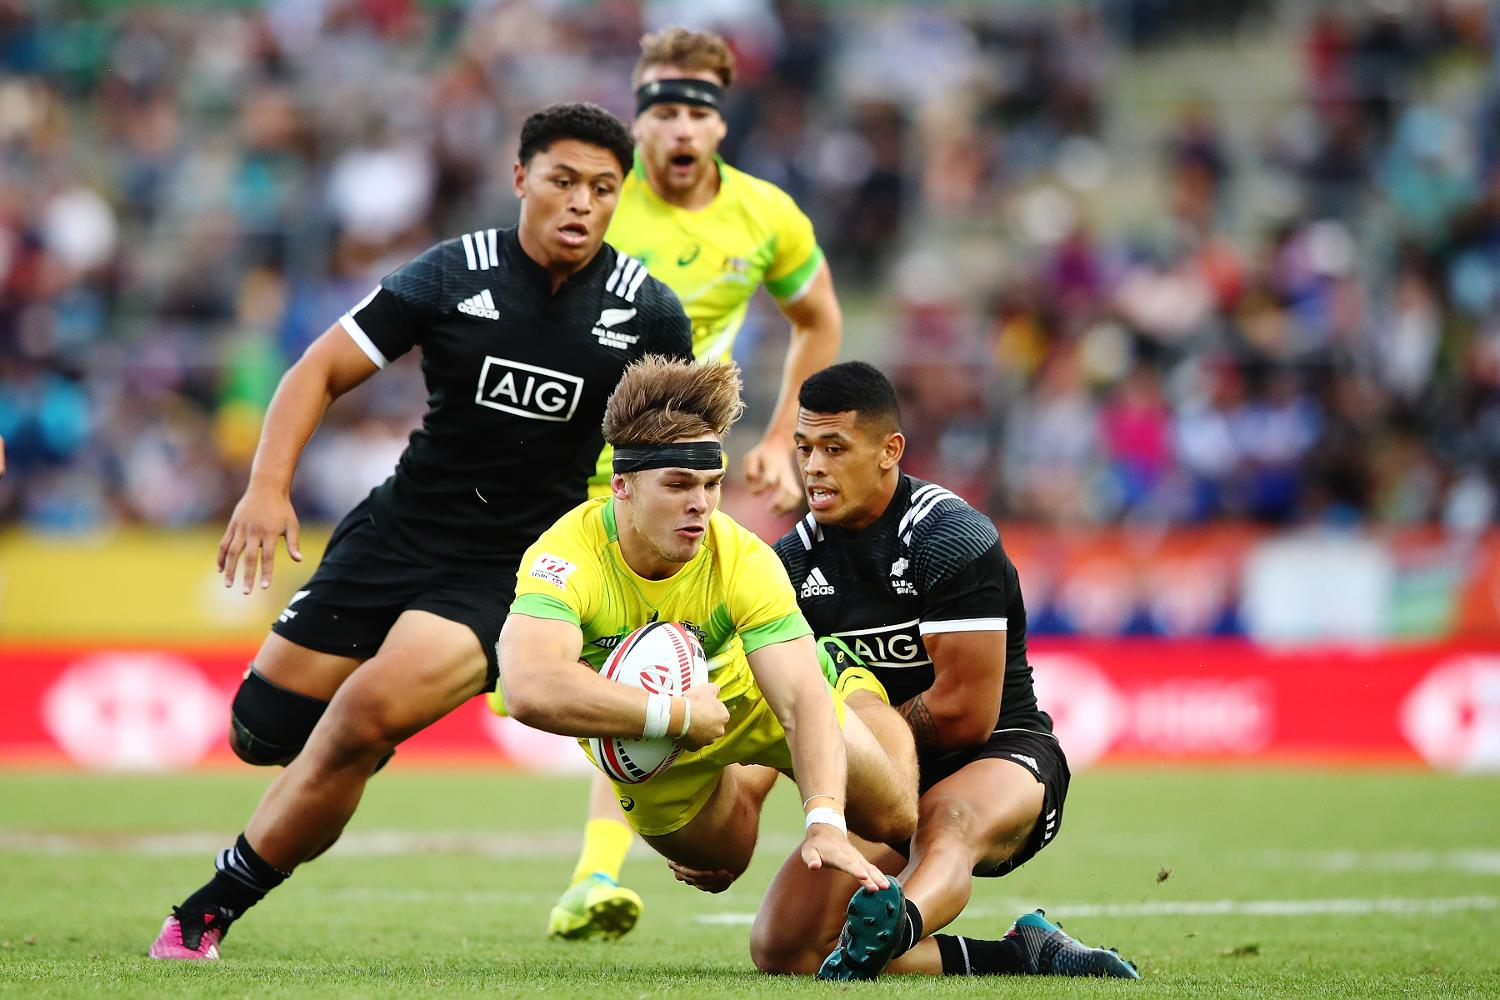 HSBC World Rugby Sevens Series - Hamilton Day 2